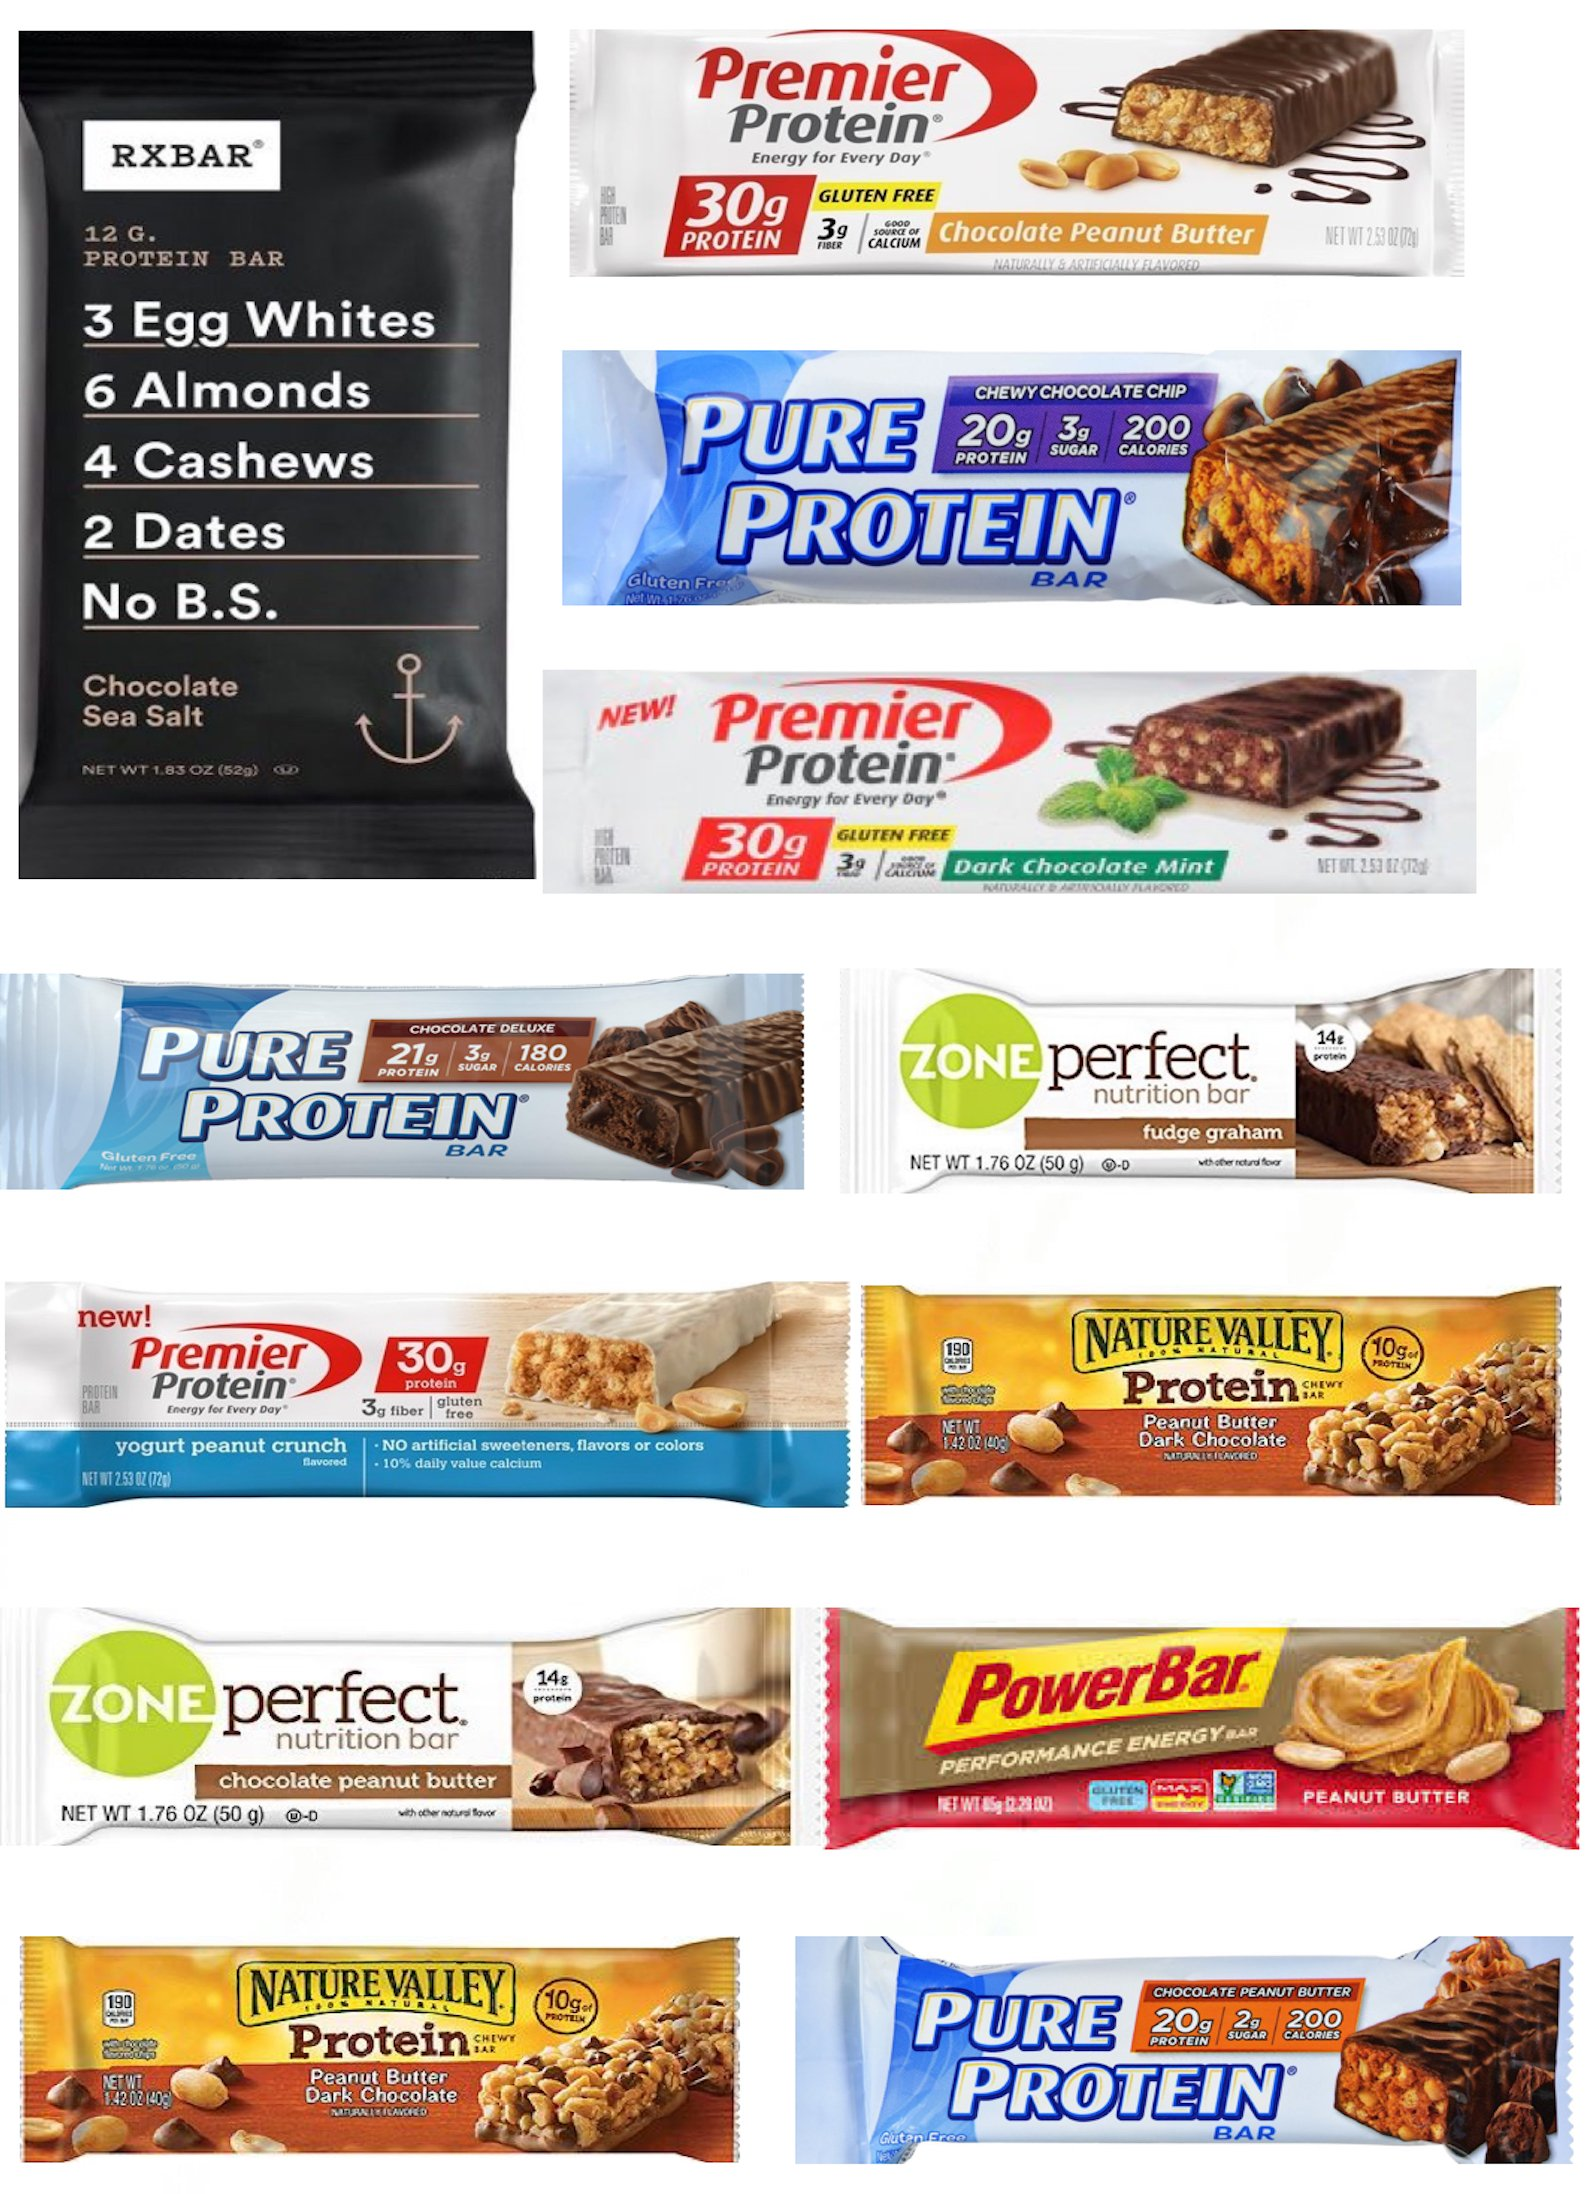 Ultimate Healthy Fitness Box High Protein Bars, Best Seller Super Variety (12 Count), RX Bars, Pure Protein Bars, Premier Protein Bars, PowerBars, Zone Perfect Bars, Nature Valley Protein Bars by LA Signature